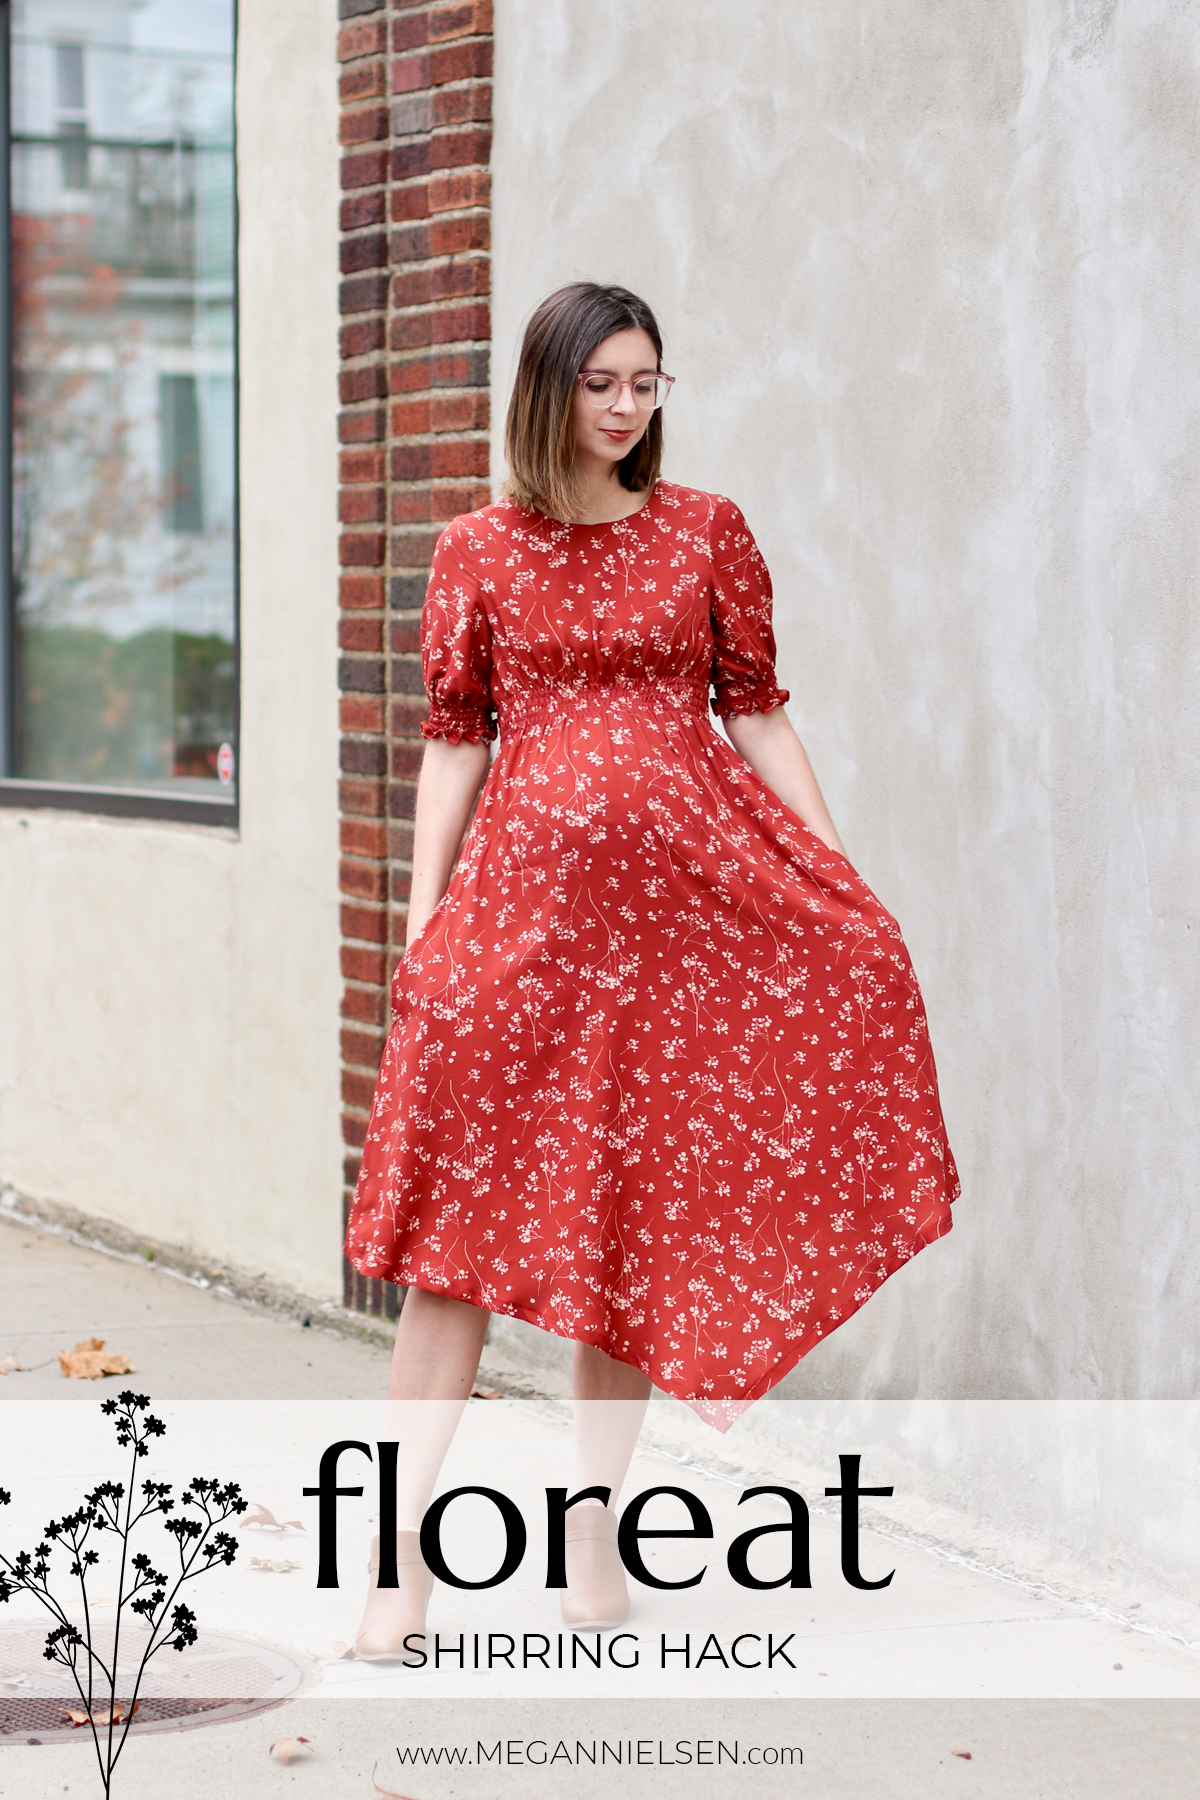 Shirring Hack for the Floreat dress